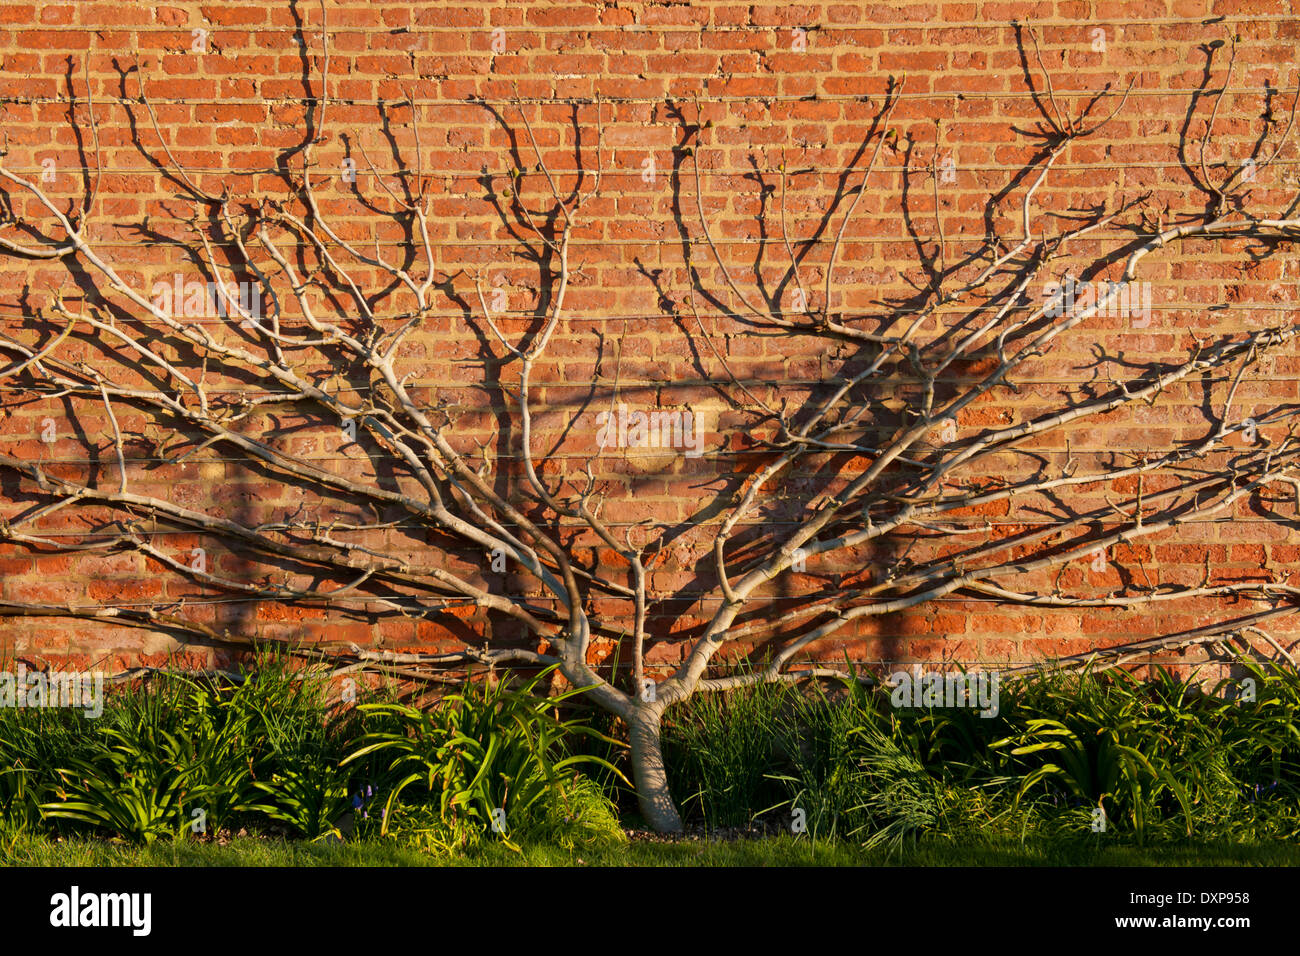 Formés de ventilateur fig Brown Turquie contre mur West Sussex Doyen cuisine jardin structure bear printemps soleil sud ensoleillé Photo Stock